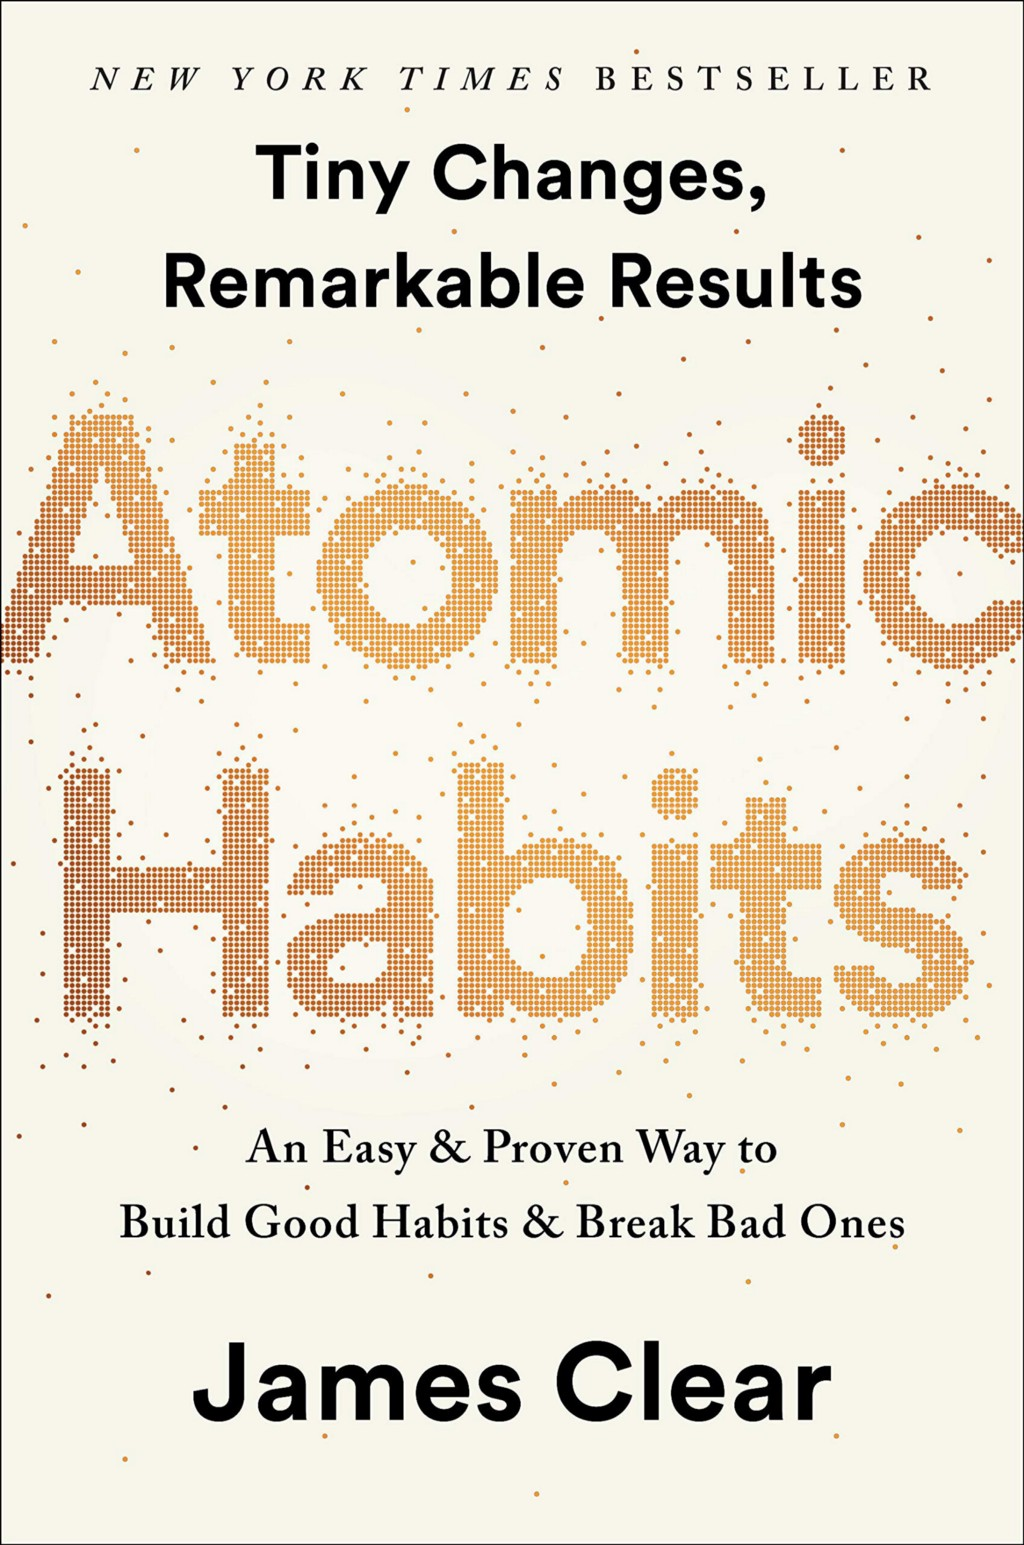 How Good Habits lead to Astonishing Results—Atomic Habits by James Clear